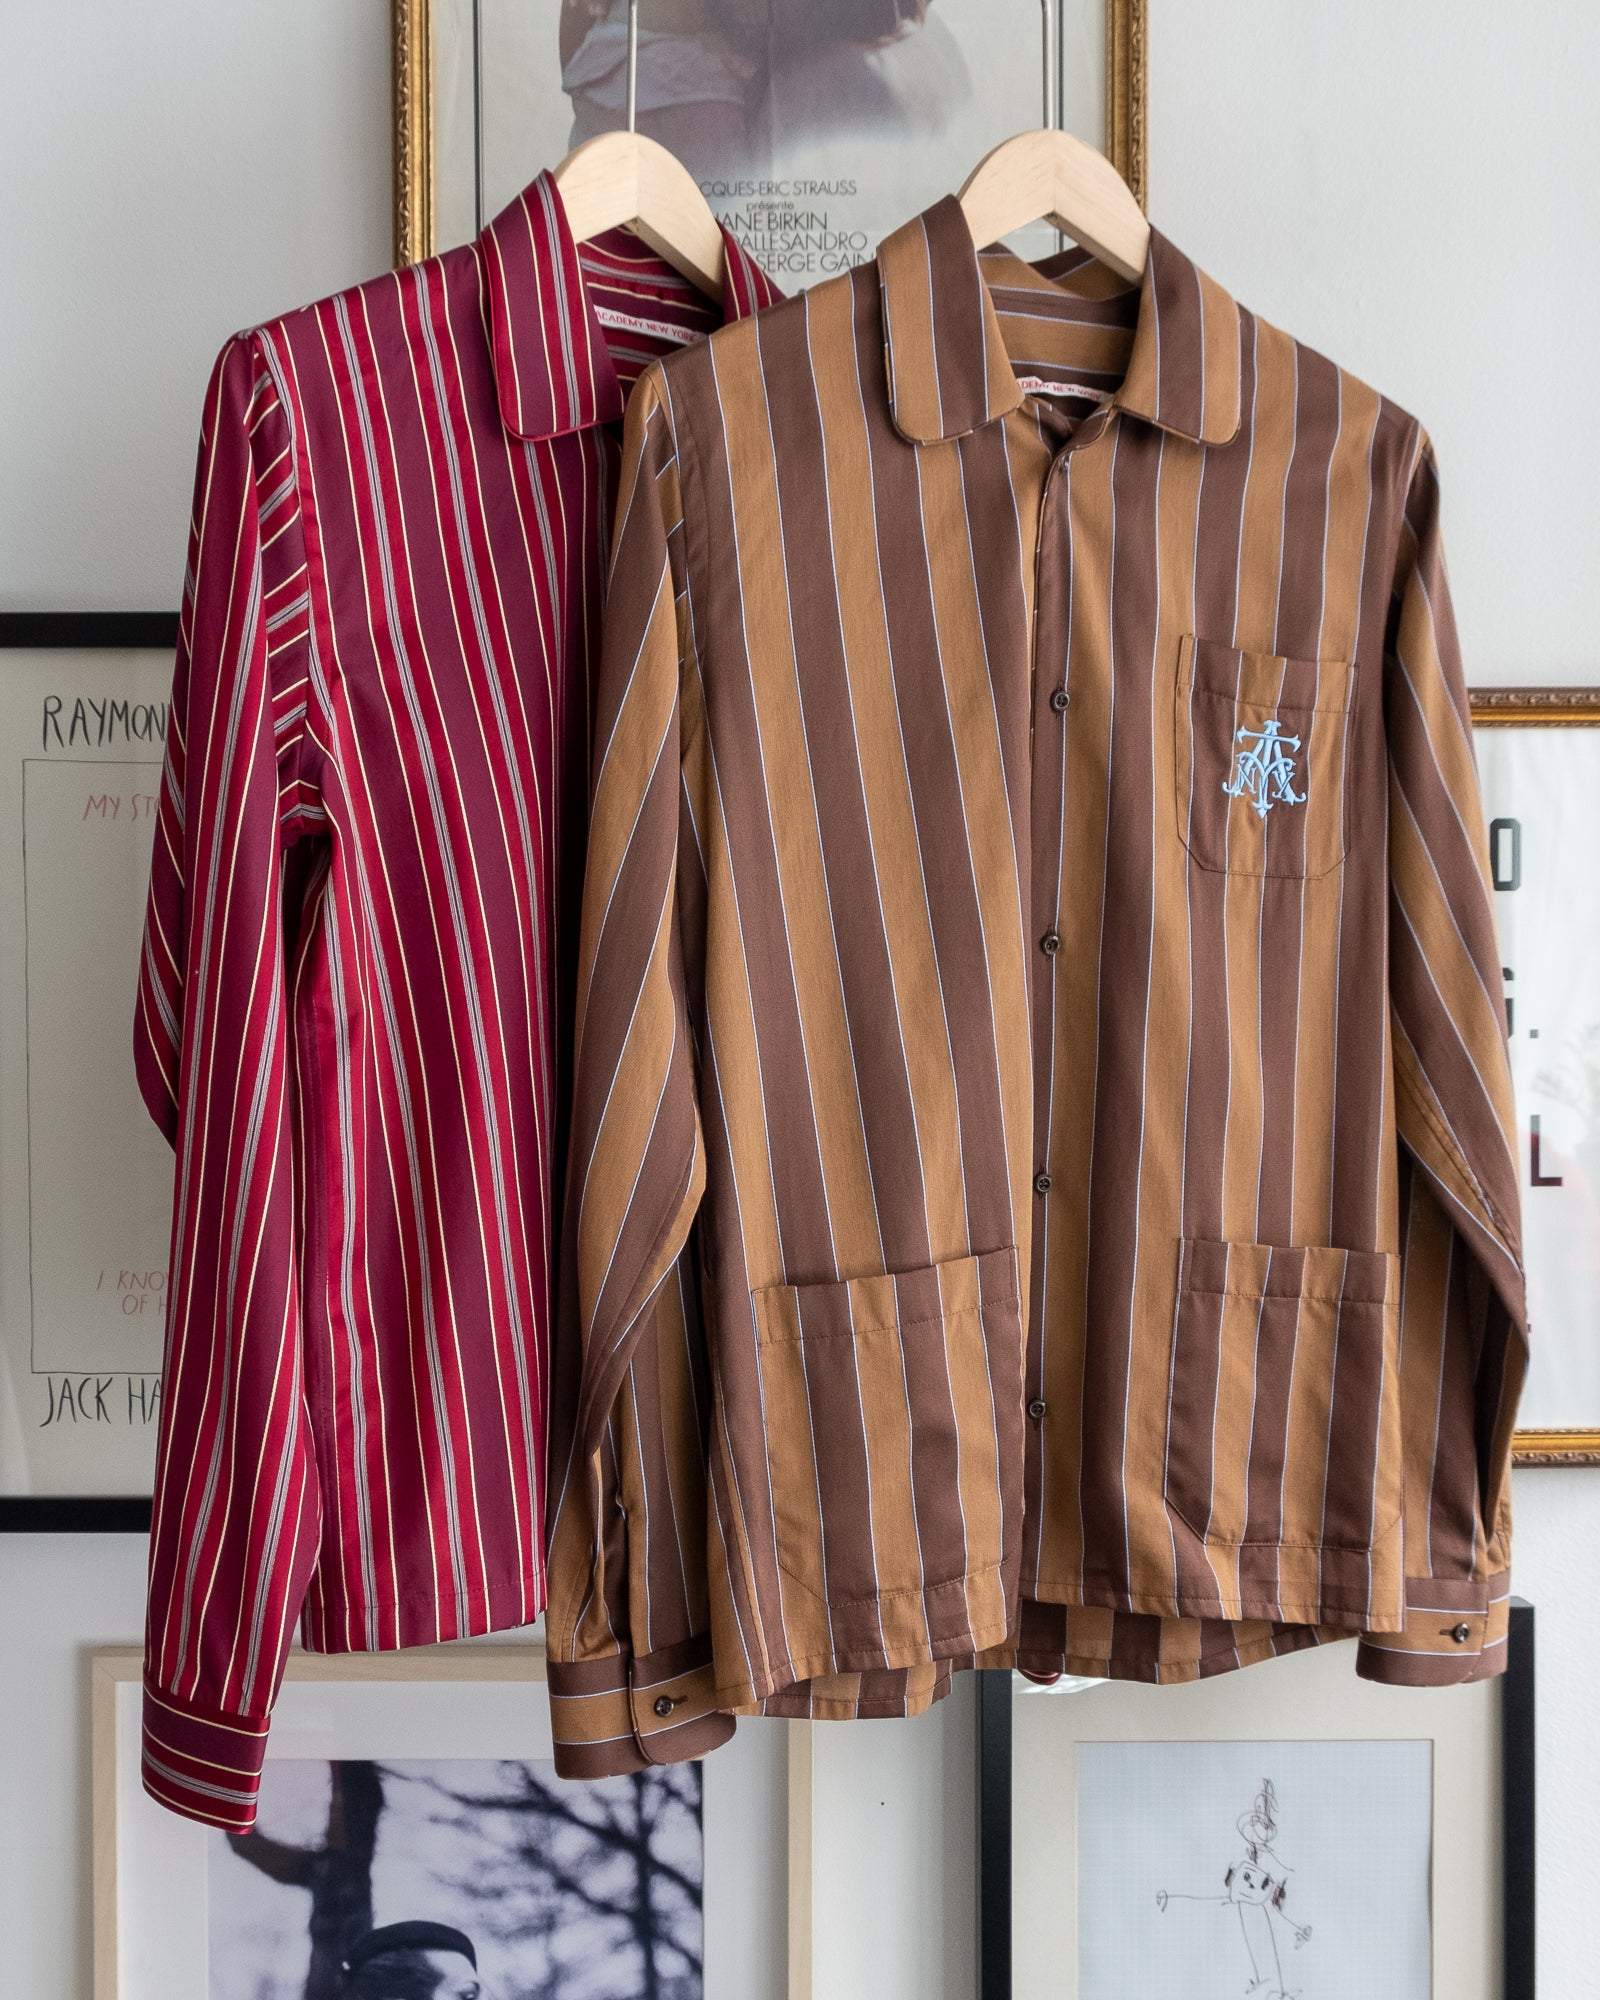 The Academy New York Crest PJ shirt in brown/blue and burgundy with blue embroidery on breast pocket.